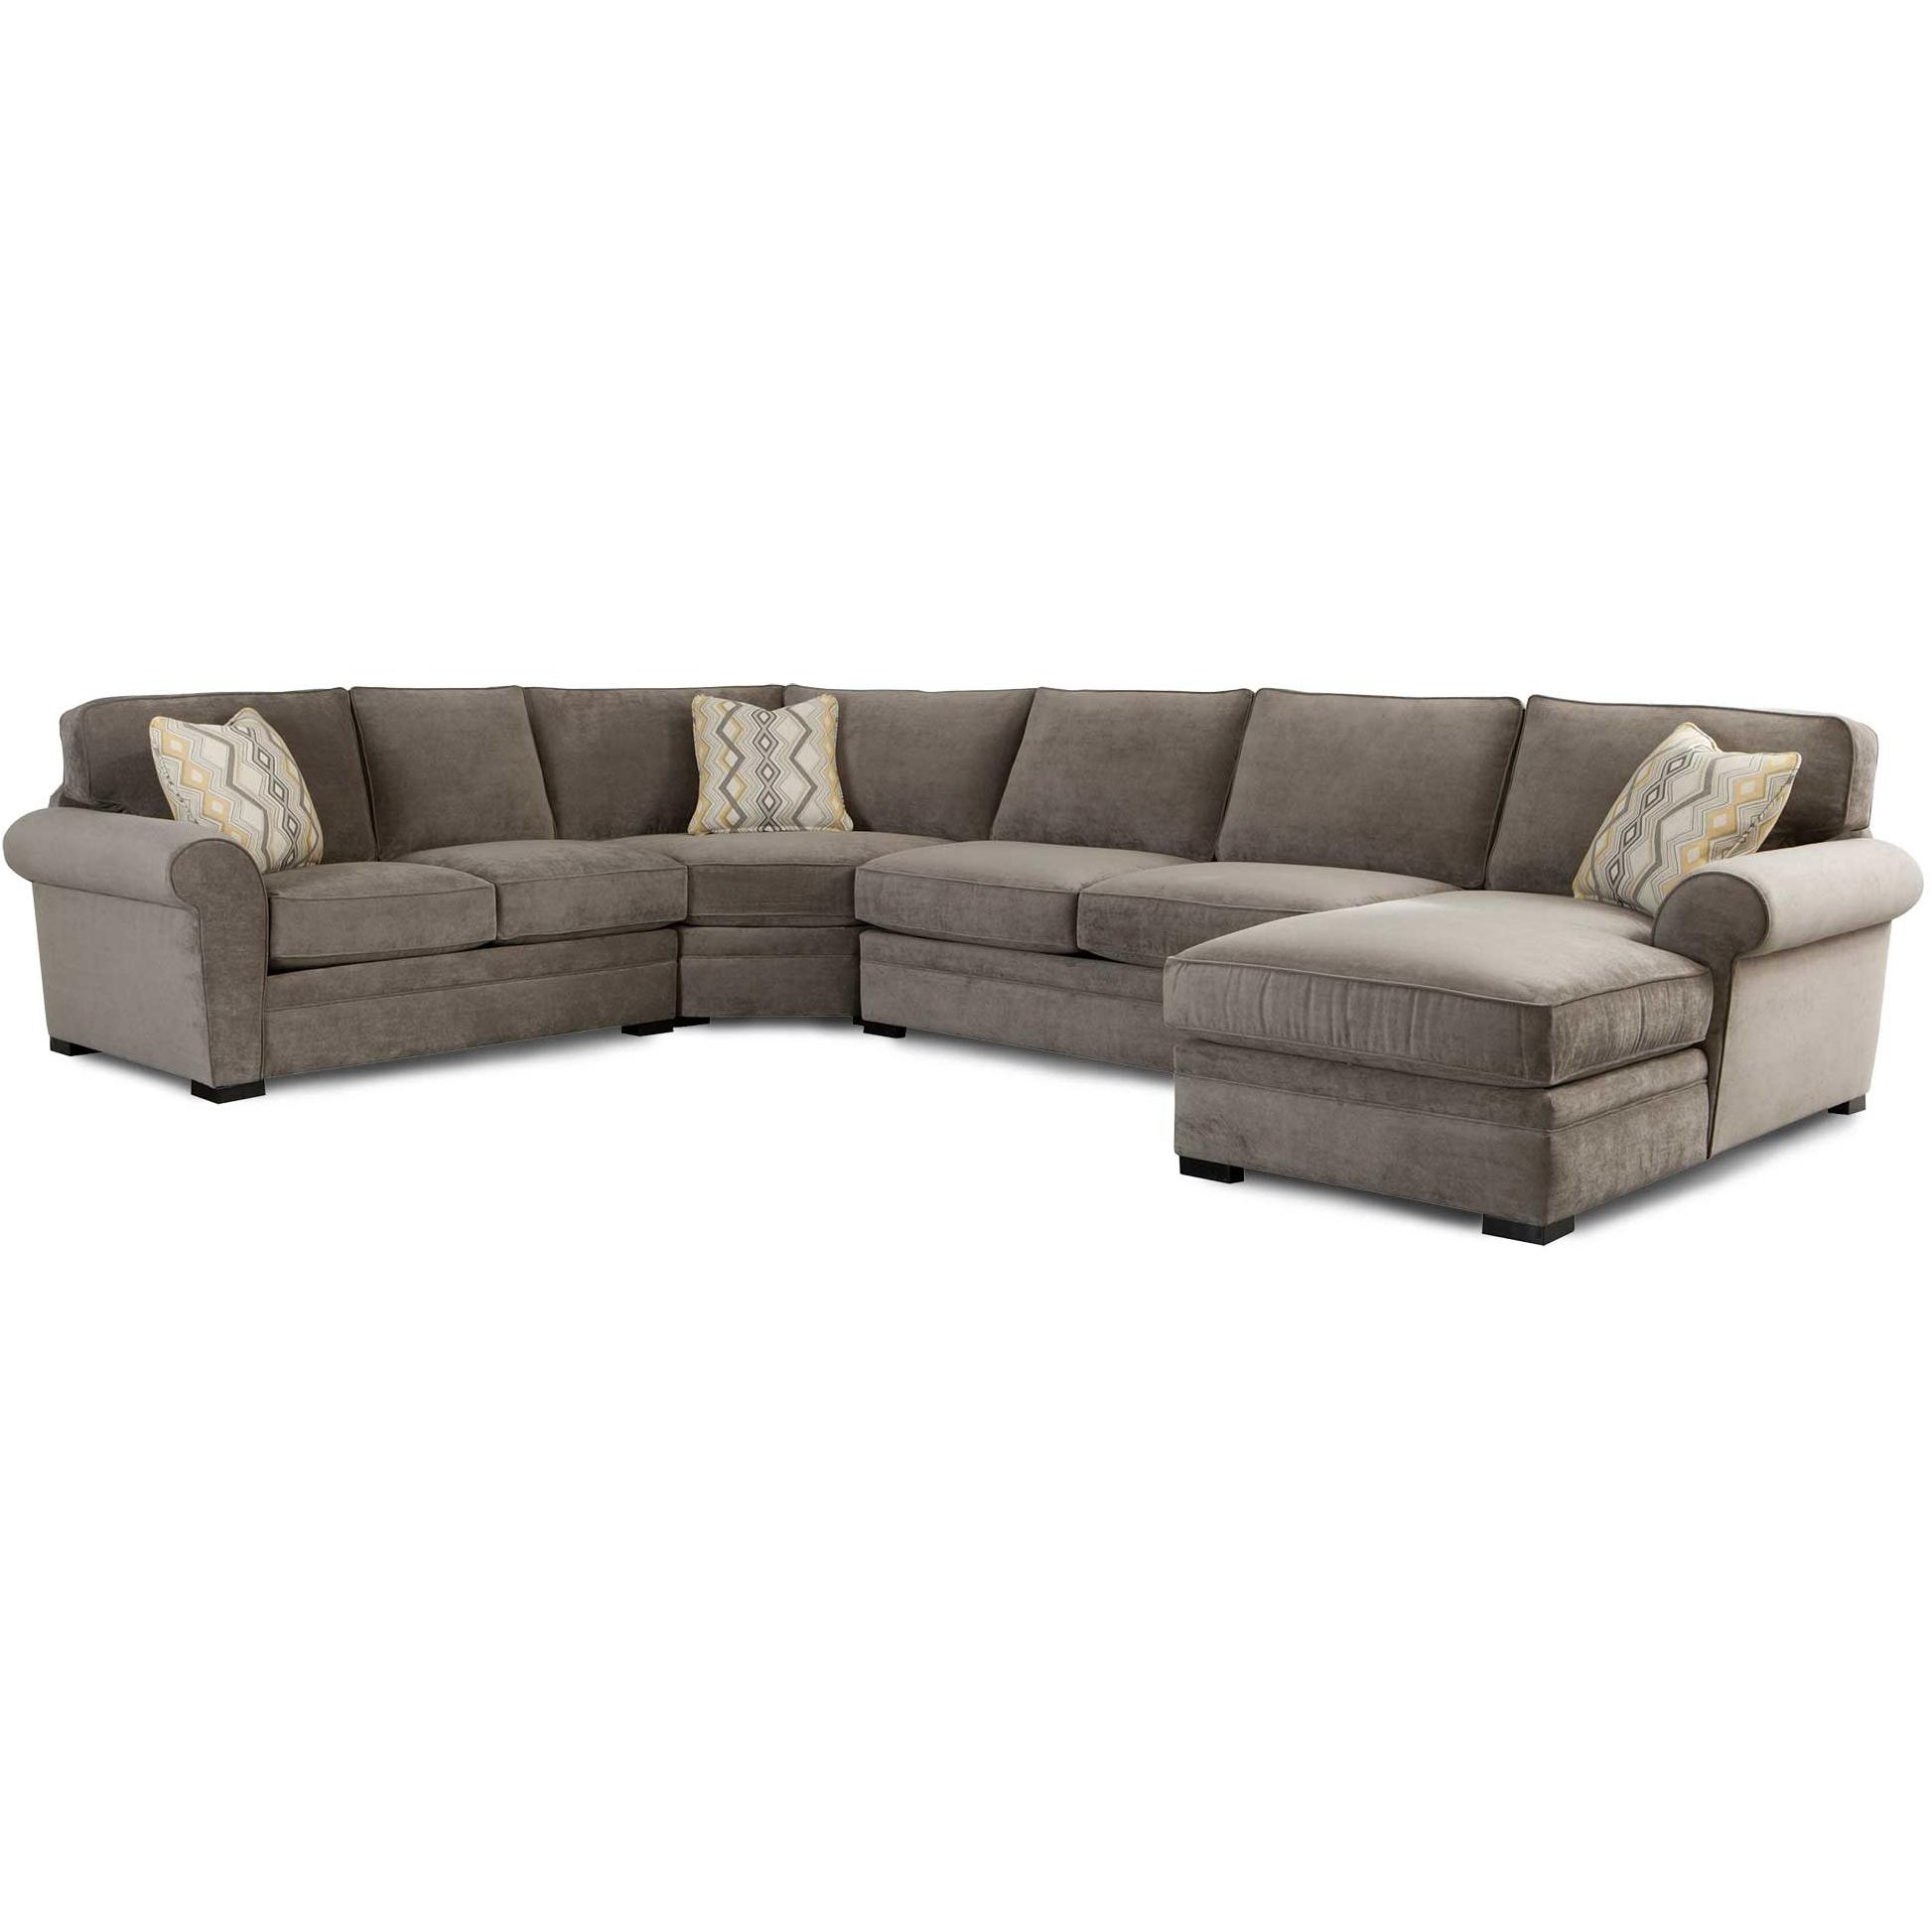 Orion Gray Upholstered 4piece Sectional